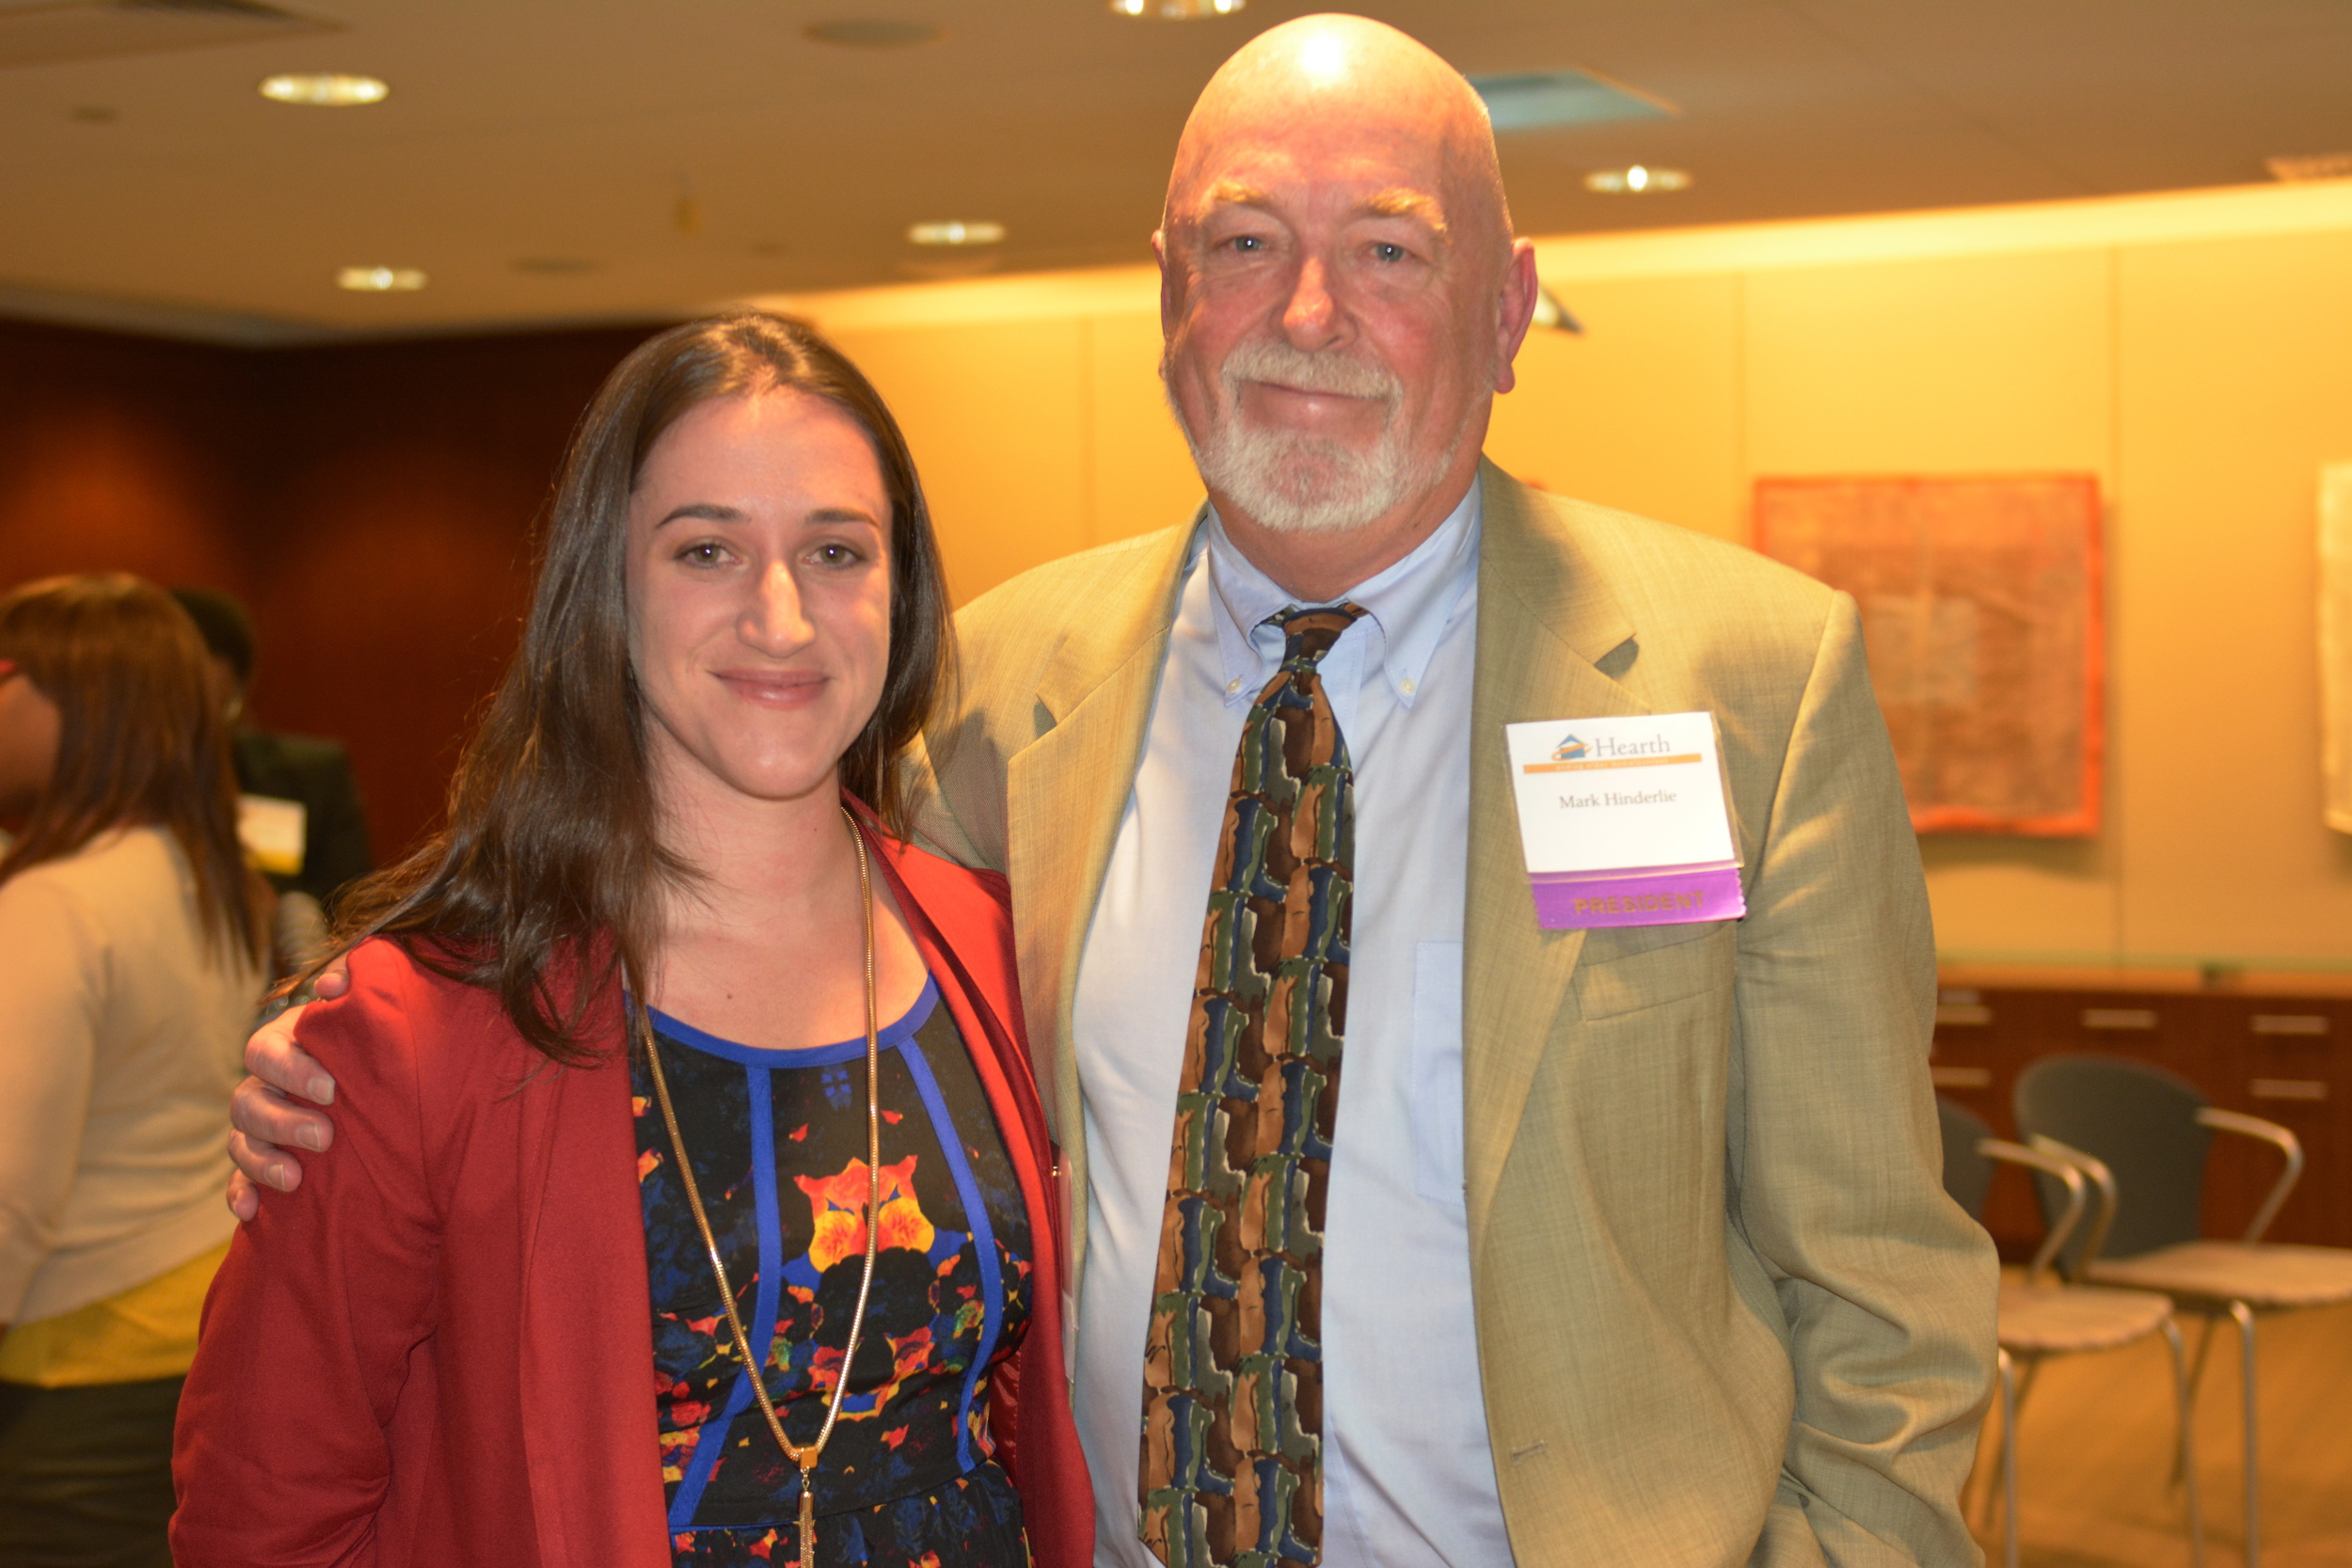 Mark with RachelCaraviello from Affordable Living for the Aging. ALA is based in Los Angeles, CA and received the Distinguished Service Award in part for the opening of their first supportive housing residence for formerly homeless seniors.